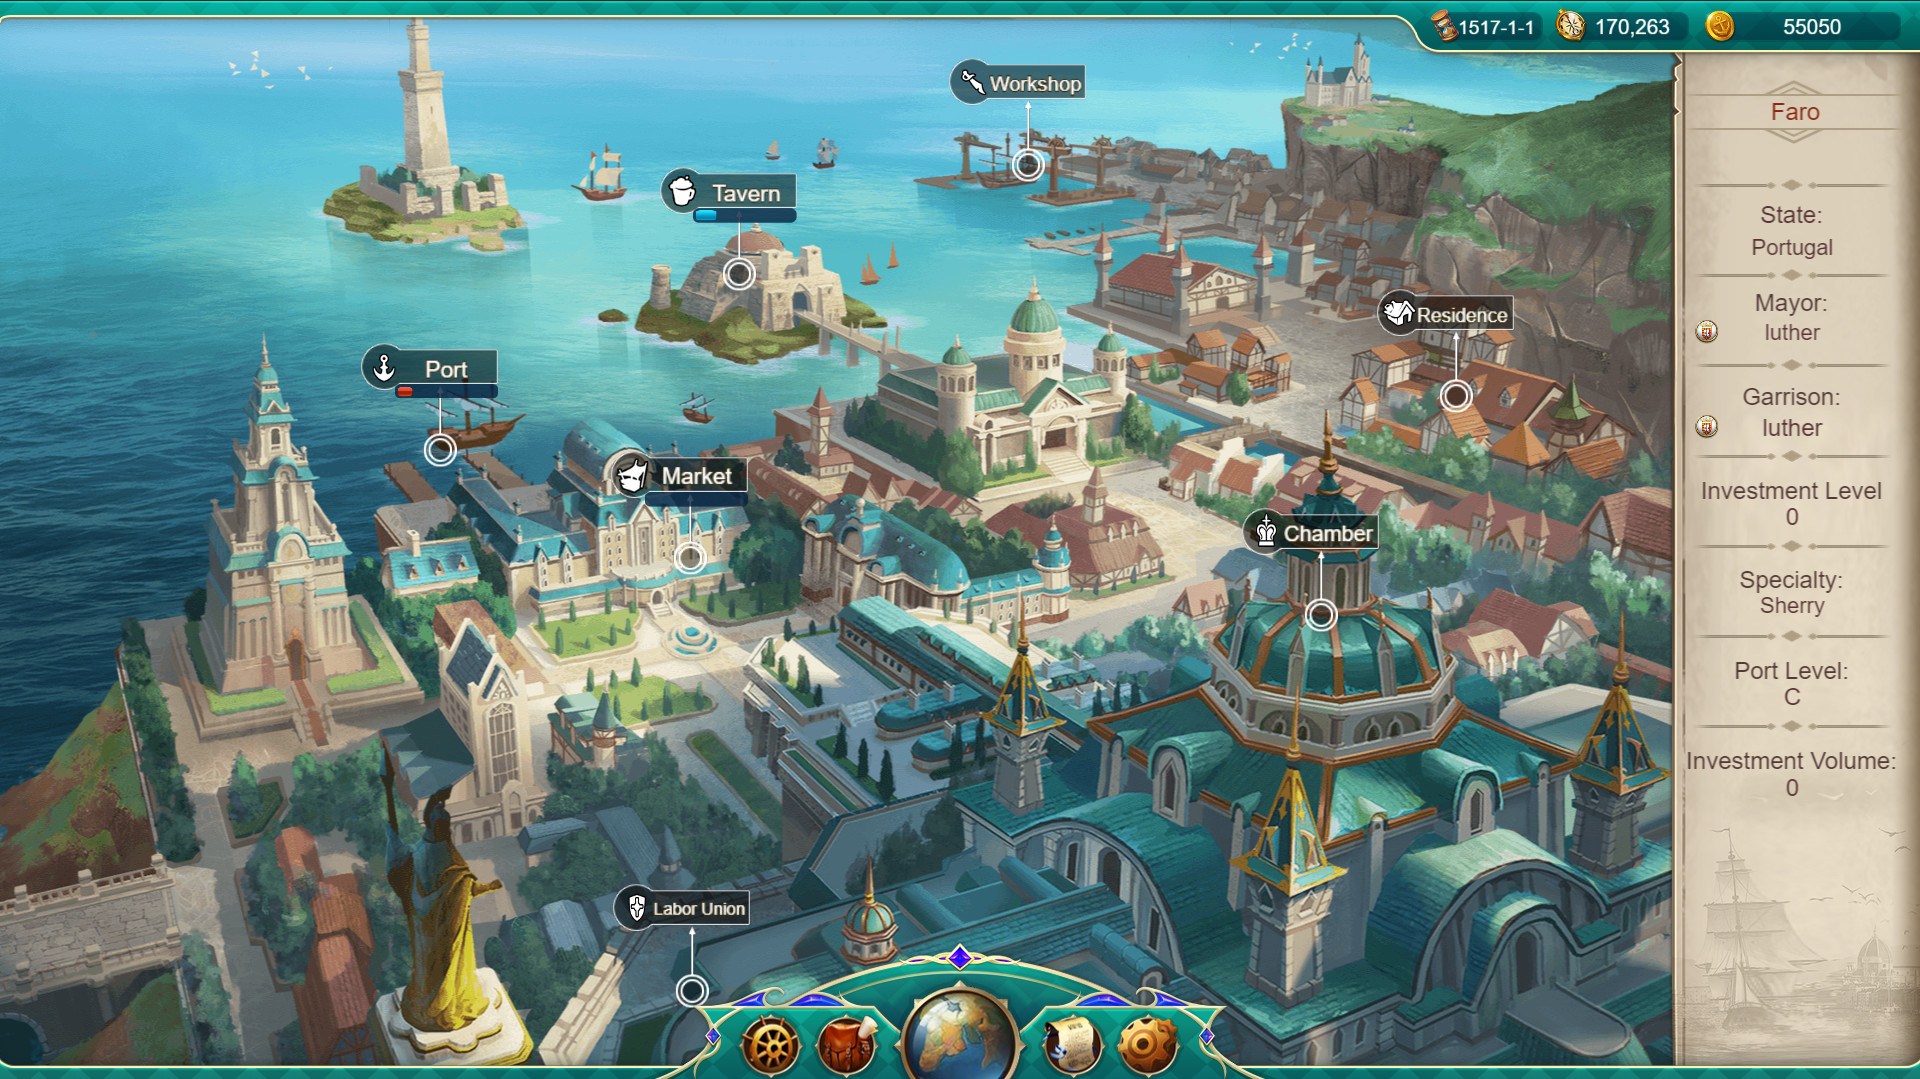 Find the best laptop for Uncharted Ocean